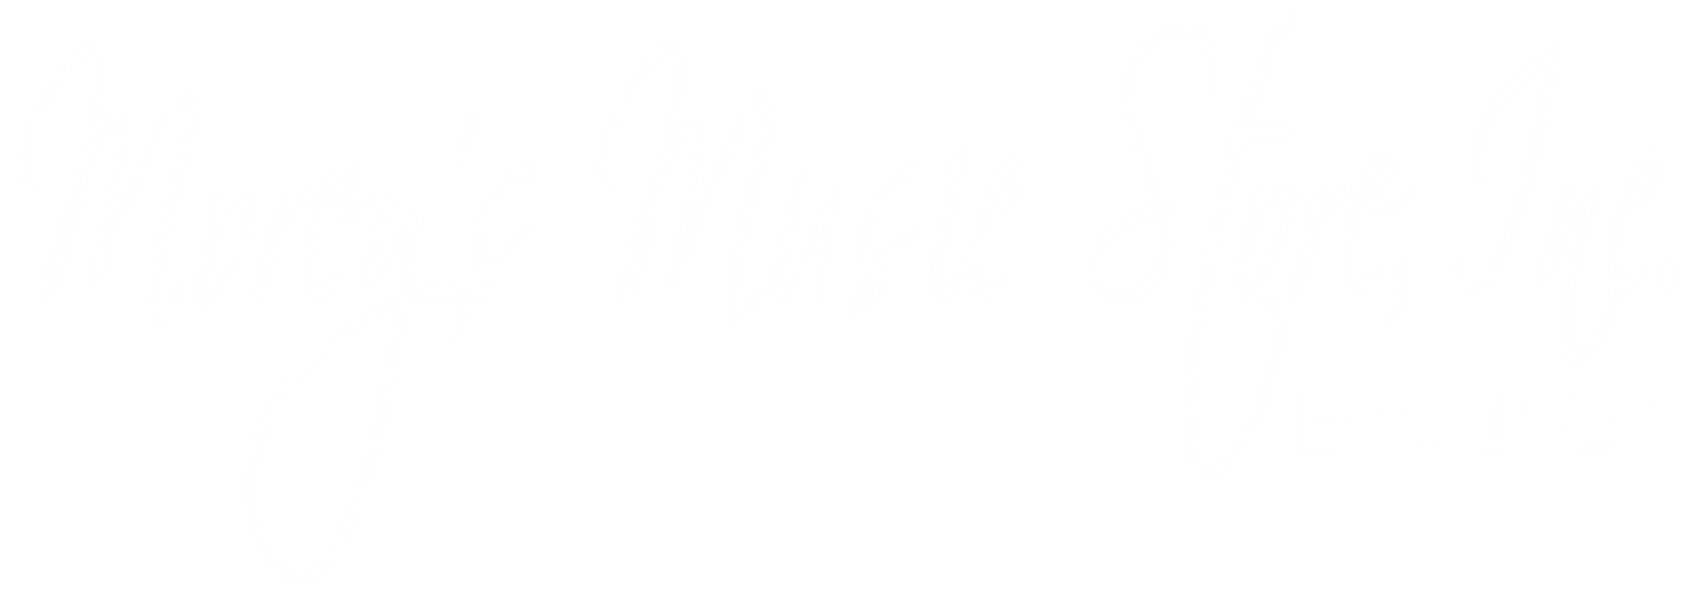 Morey's Music Store Inc.